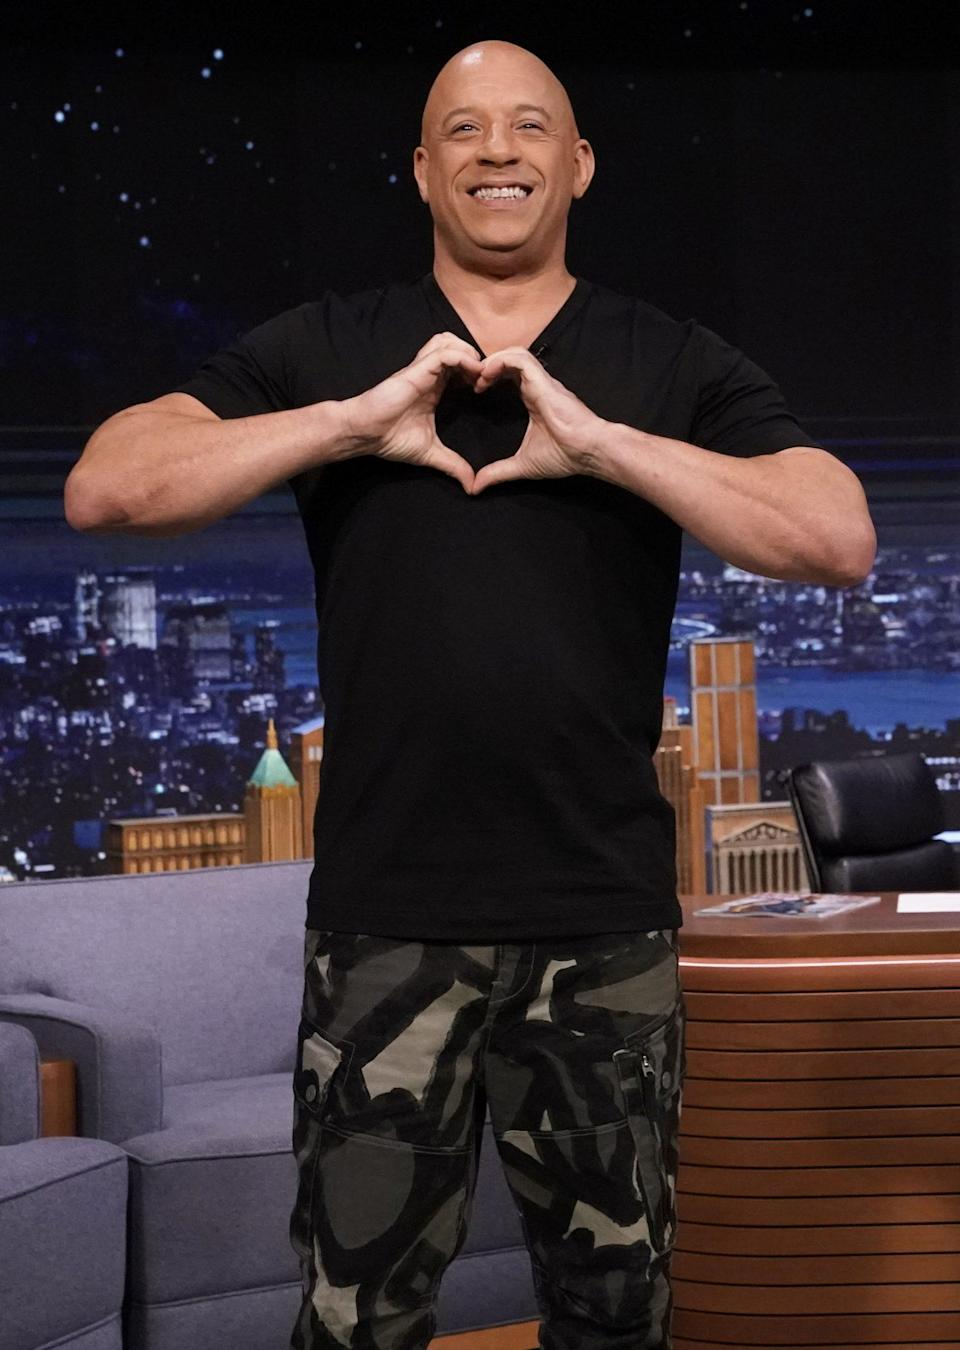 <p>Vin Diesel spreads love during his guest appearance on <em>The Tonight Show Starring Jimmy Fallon</em> on June 22 in N.Y.C.</p>